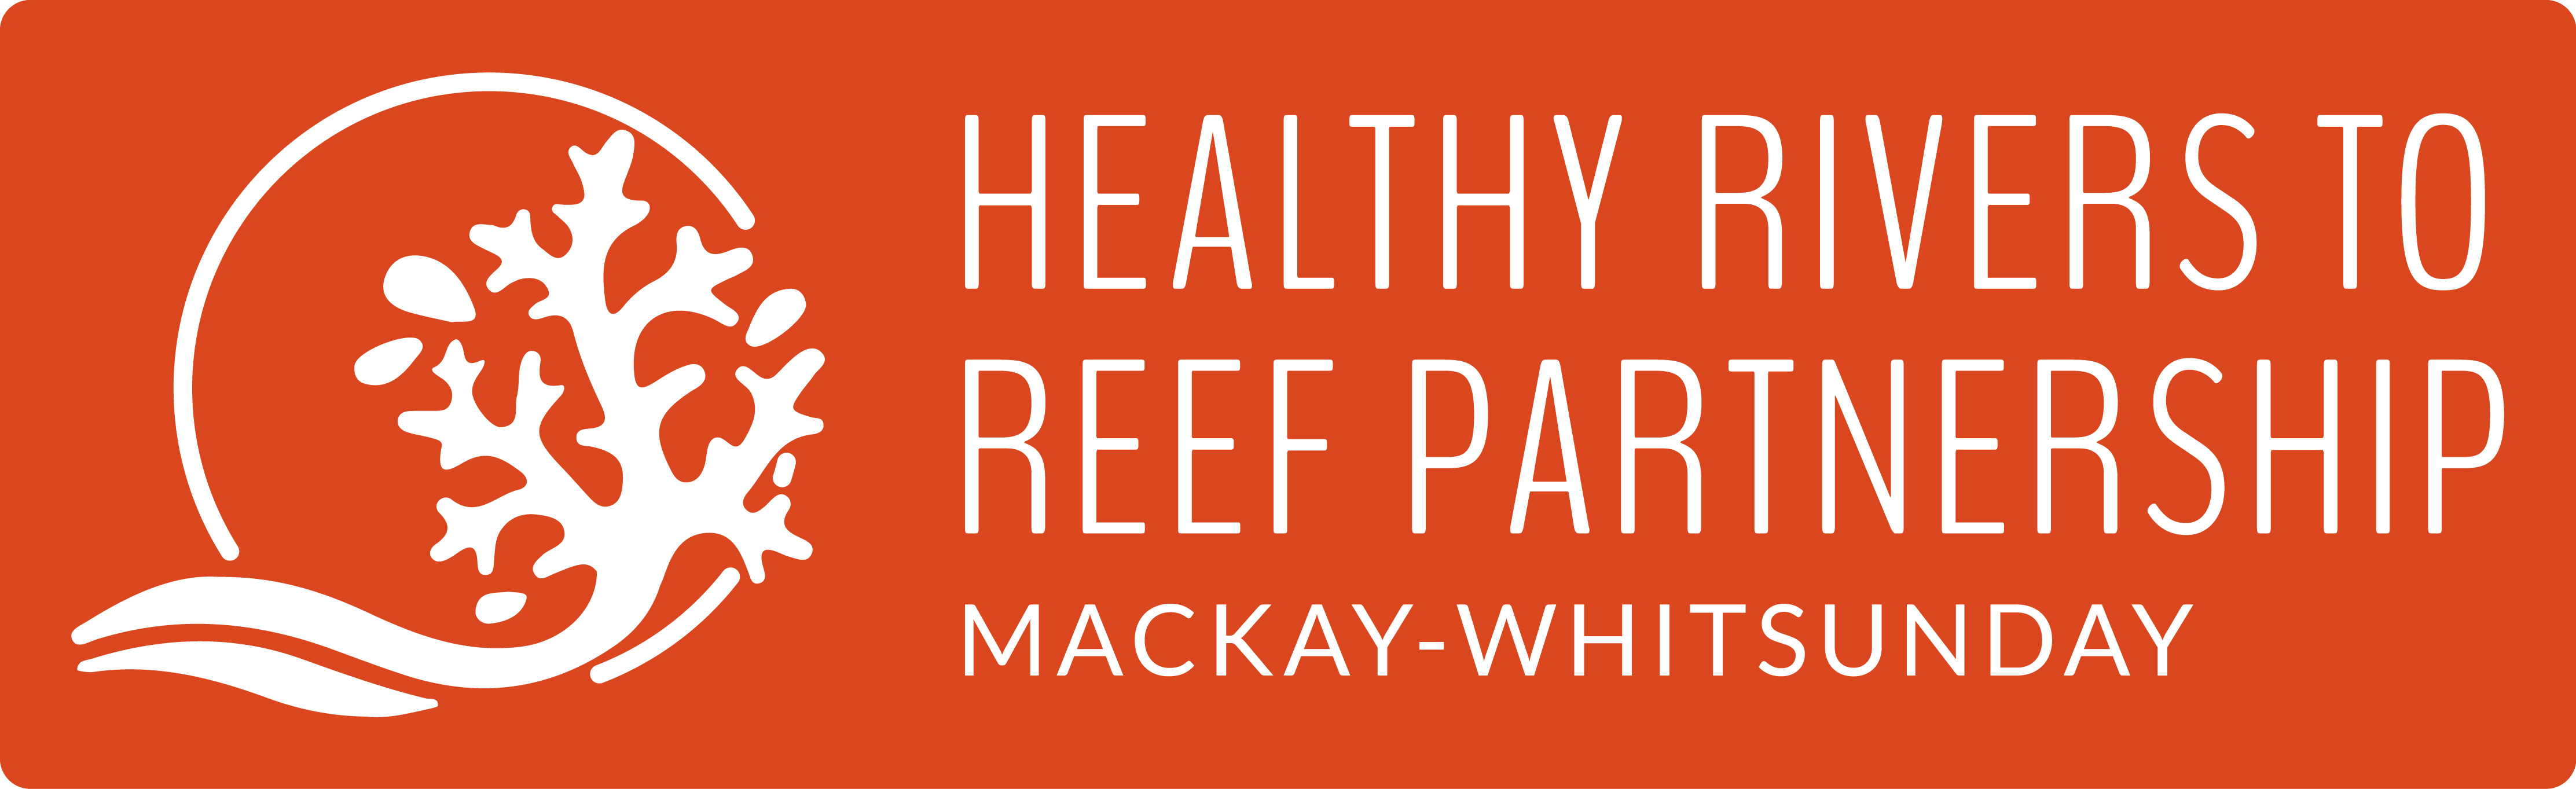 Healthy Rivers to Reef Partnership